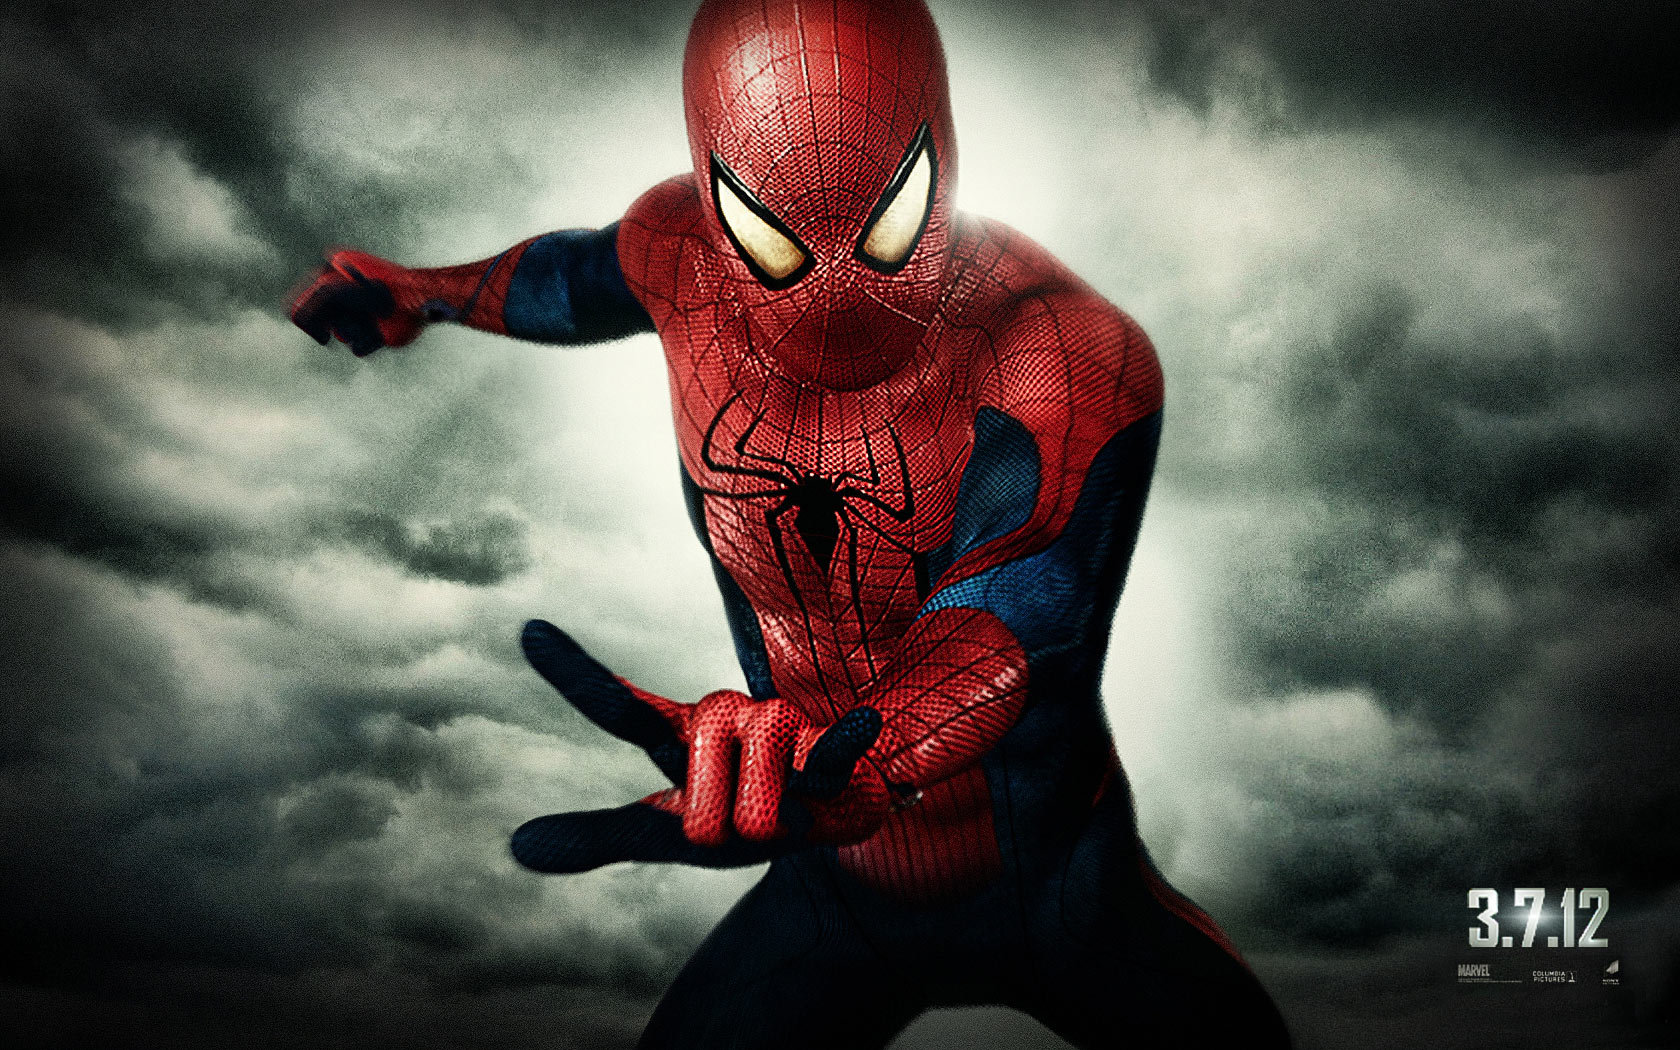 The Amazing Spider Man Wallpapers 1680x1050 Desktop Backgrounds